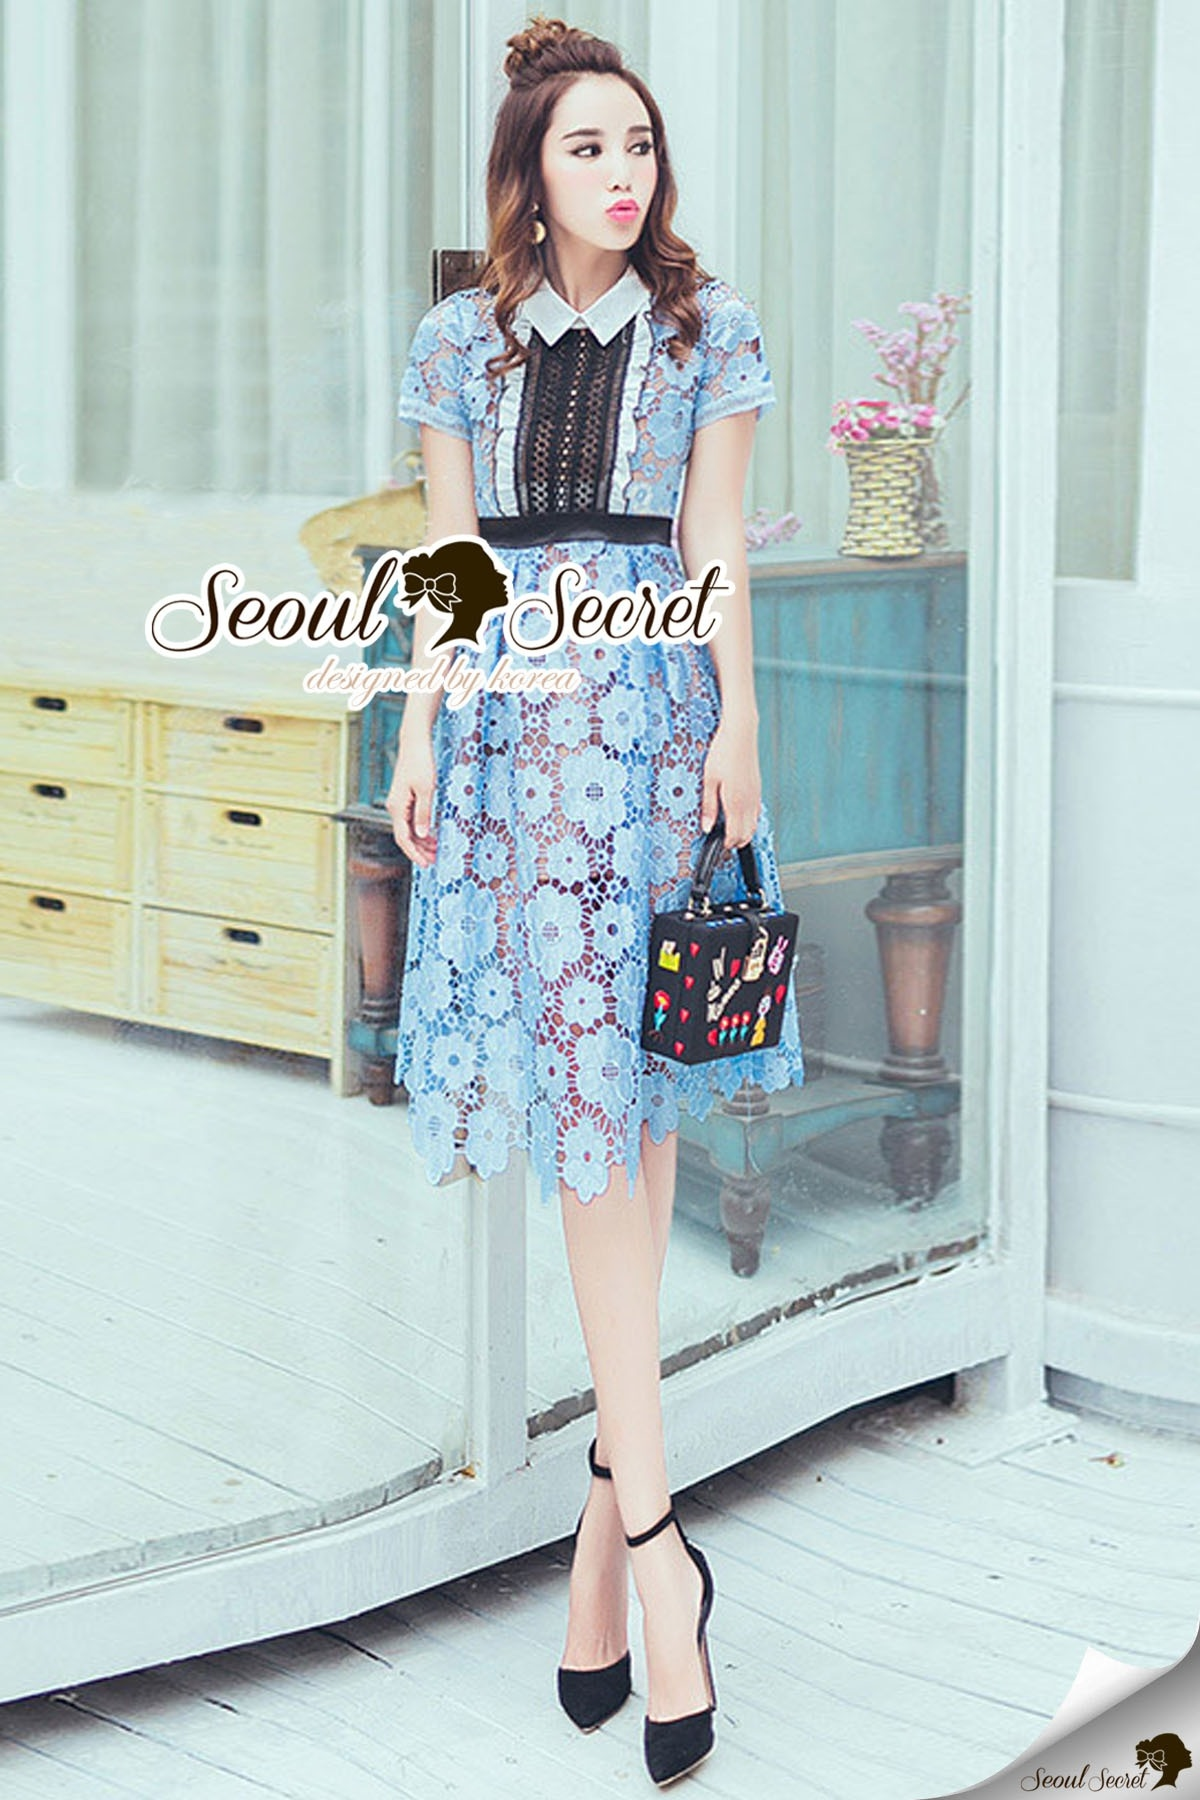 Seoul Secret Say's .... Baby Blue Flora Lace Flowering Dress